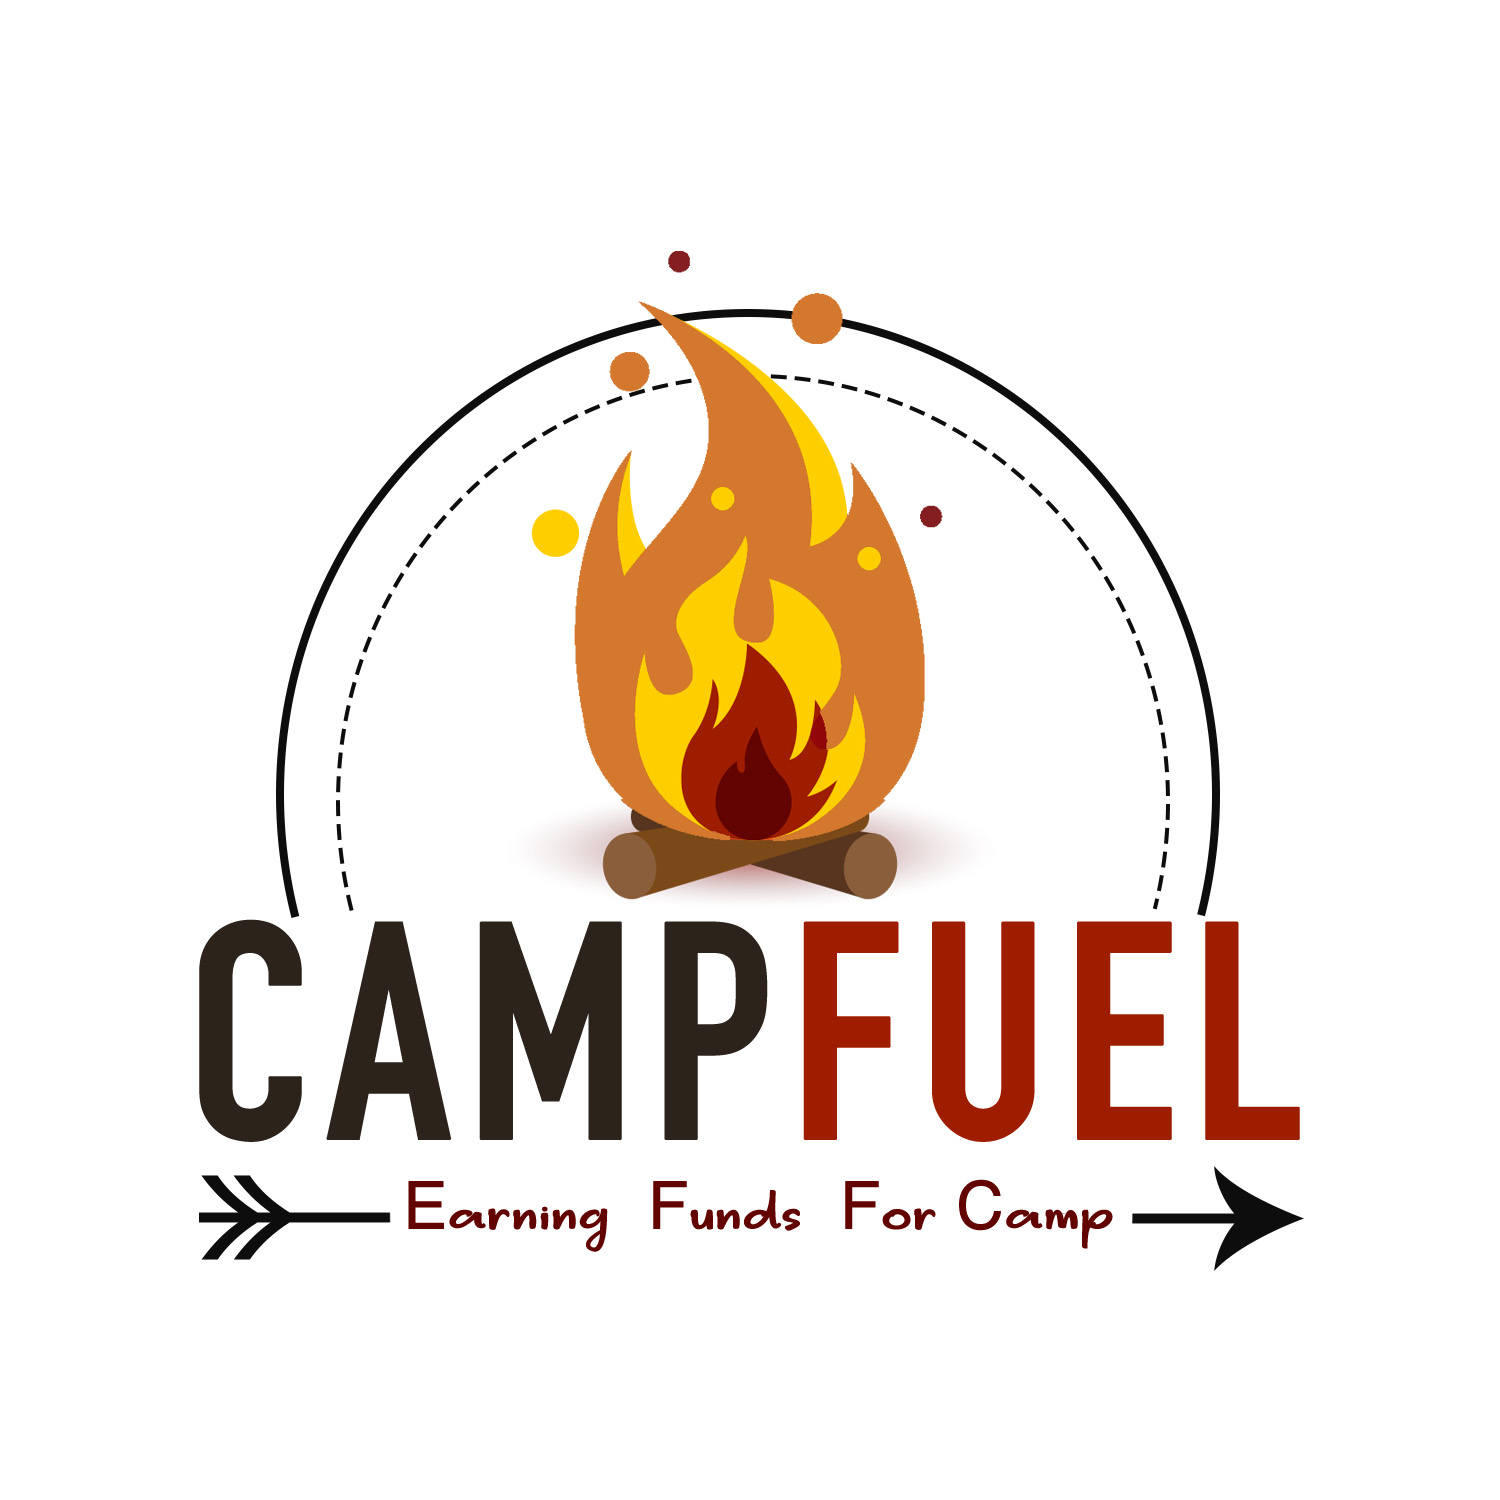 camp fuel logo